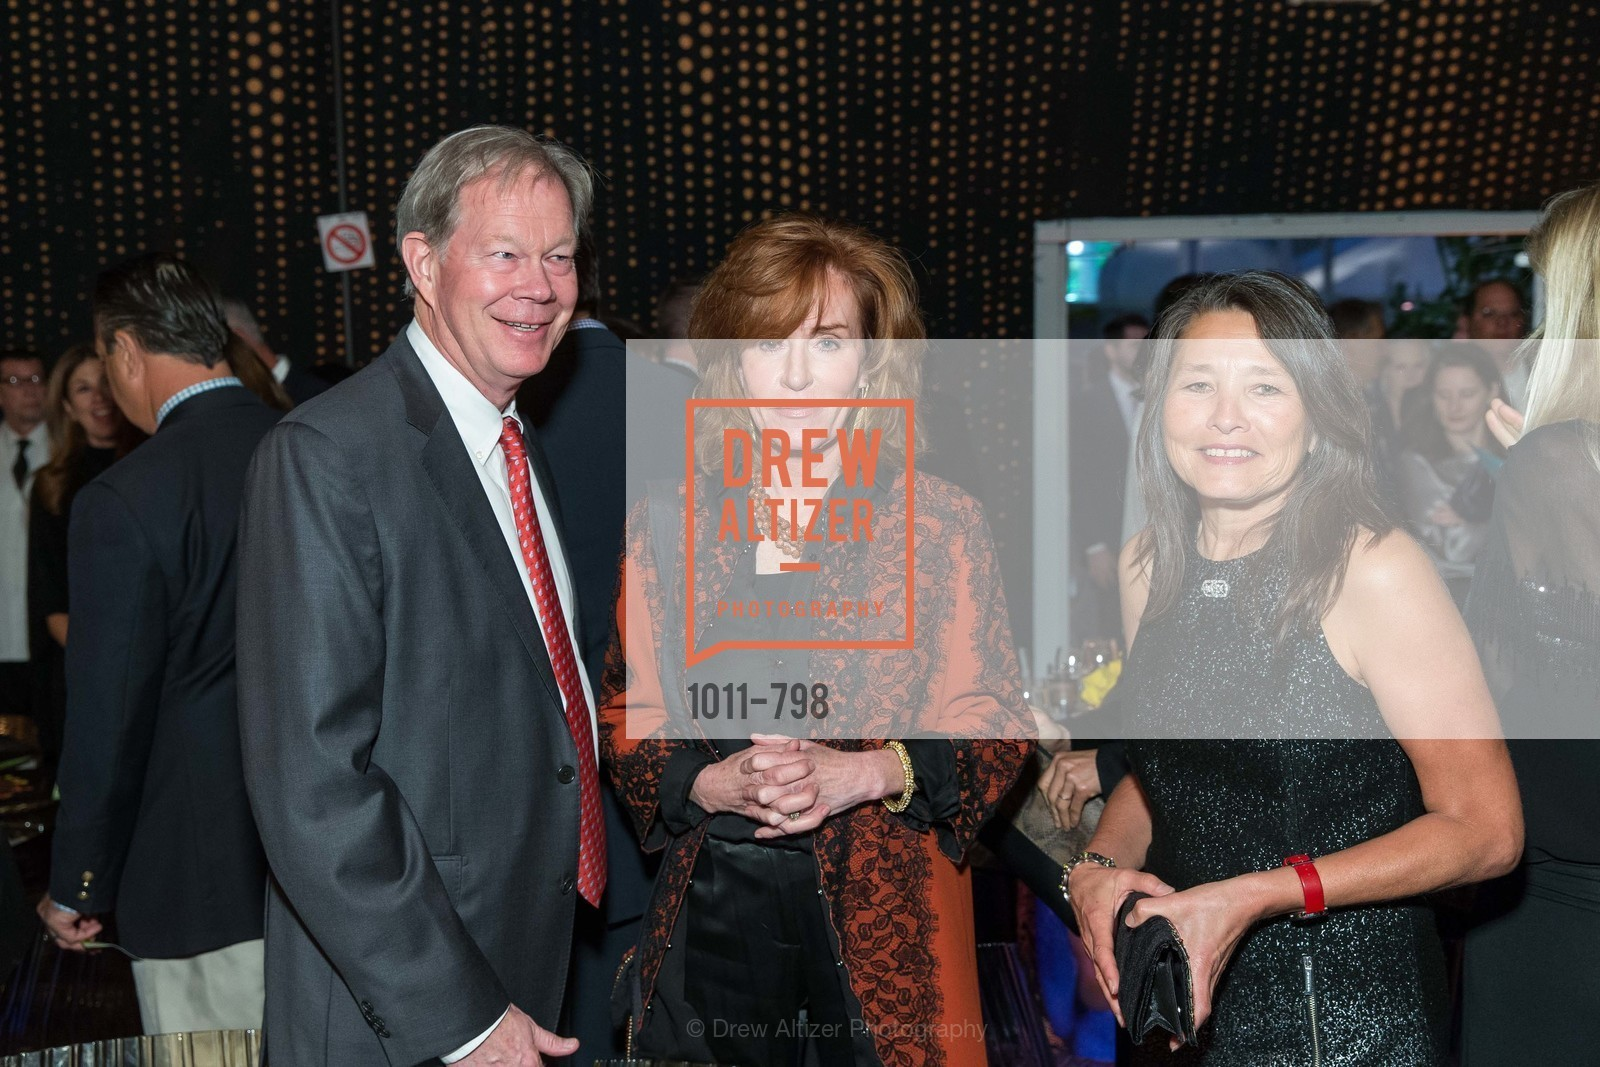 George Jewett, Brenda Jewett, Kathleen Volkmann, CALIFORNIA ACADEMY OF SCIENCES - Big Bang Gala 2015, US, April 24th, 2015,Drew Altizer, Drew Altizer Photography, full-service agency, private events, San Francisco photographer, photographer california